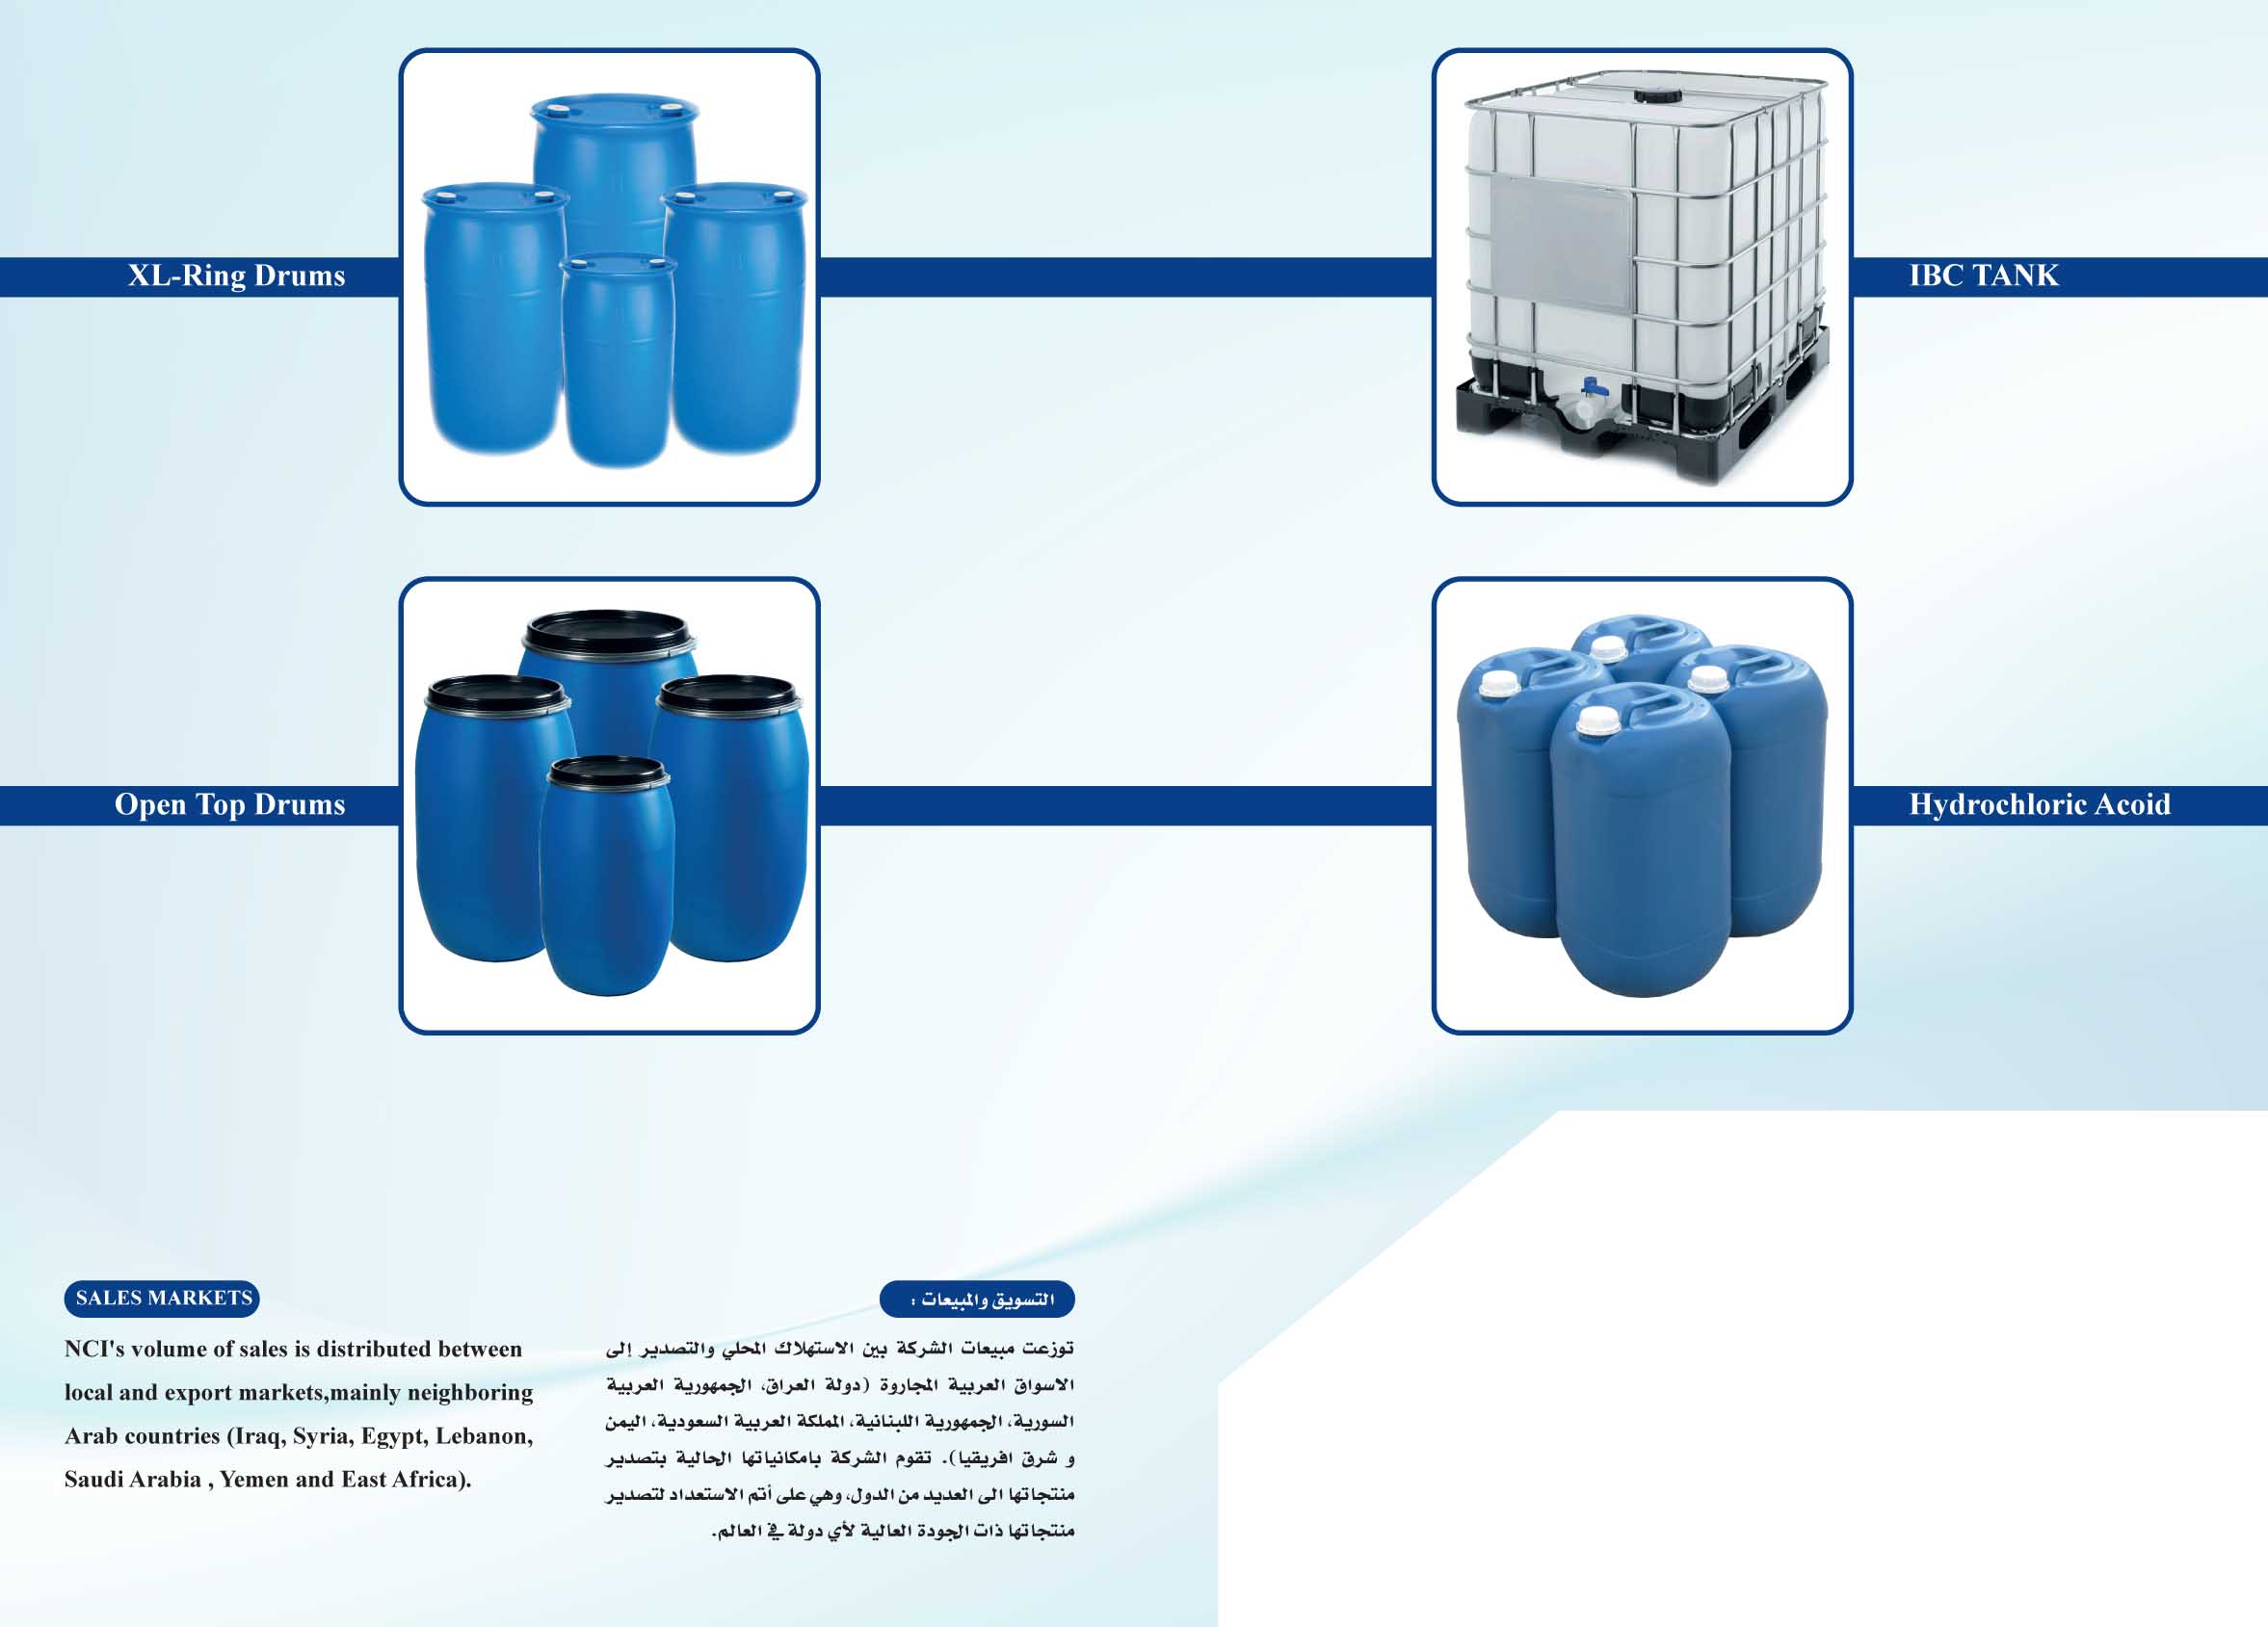 National Chlorine Industries